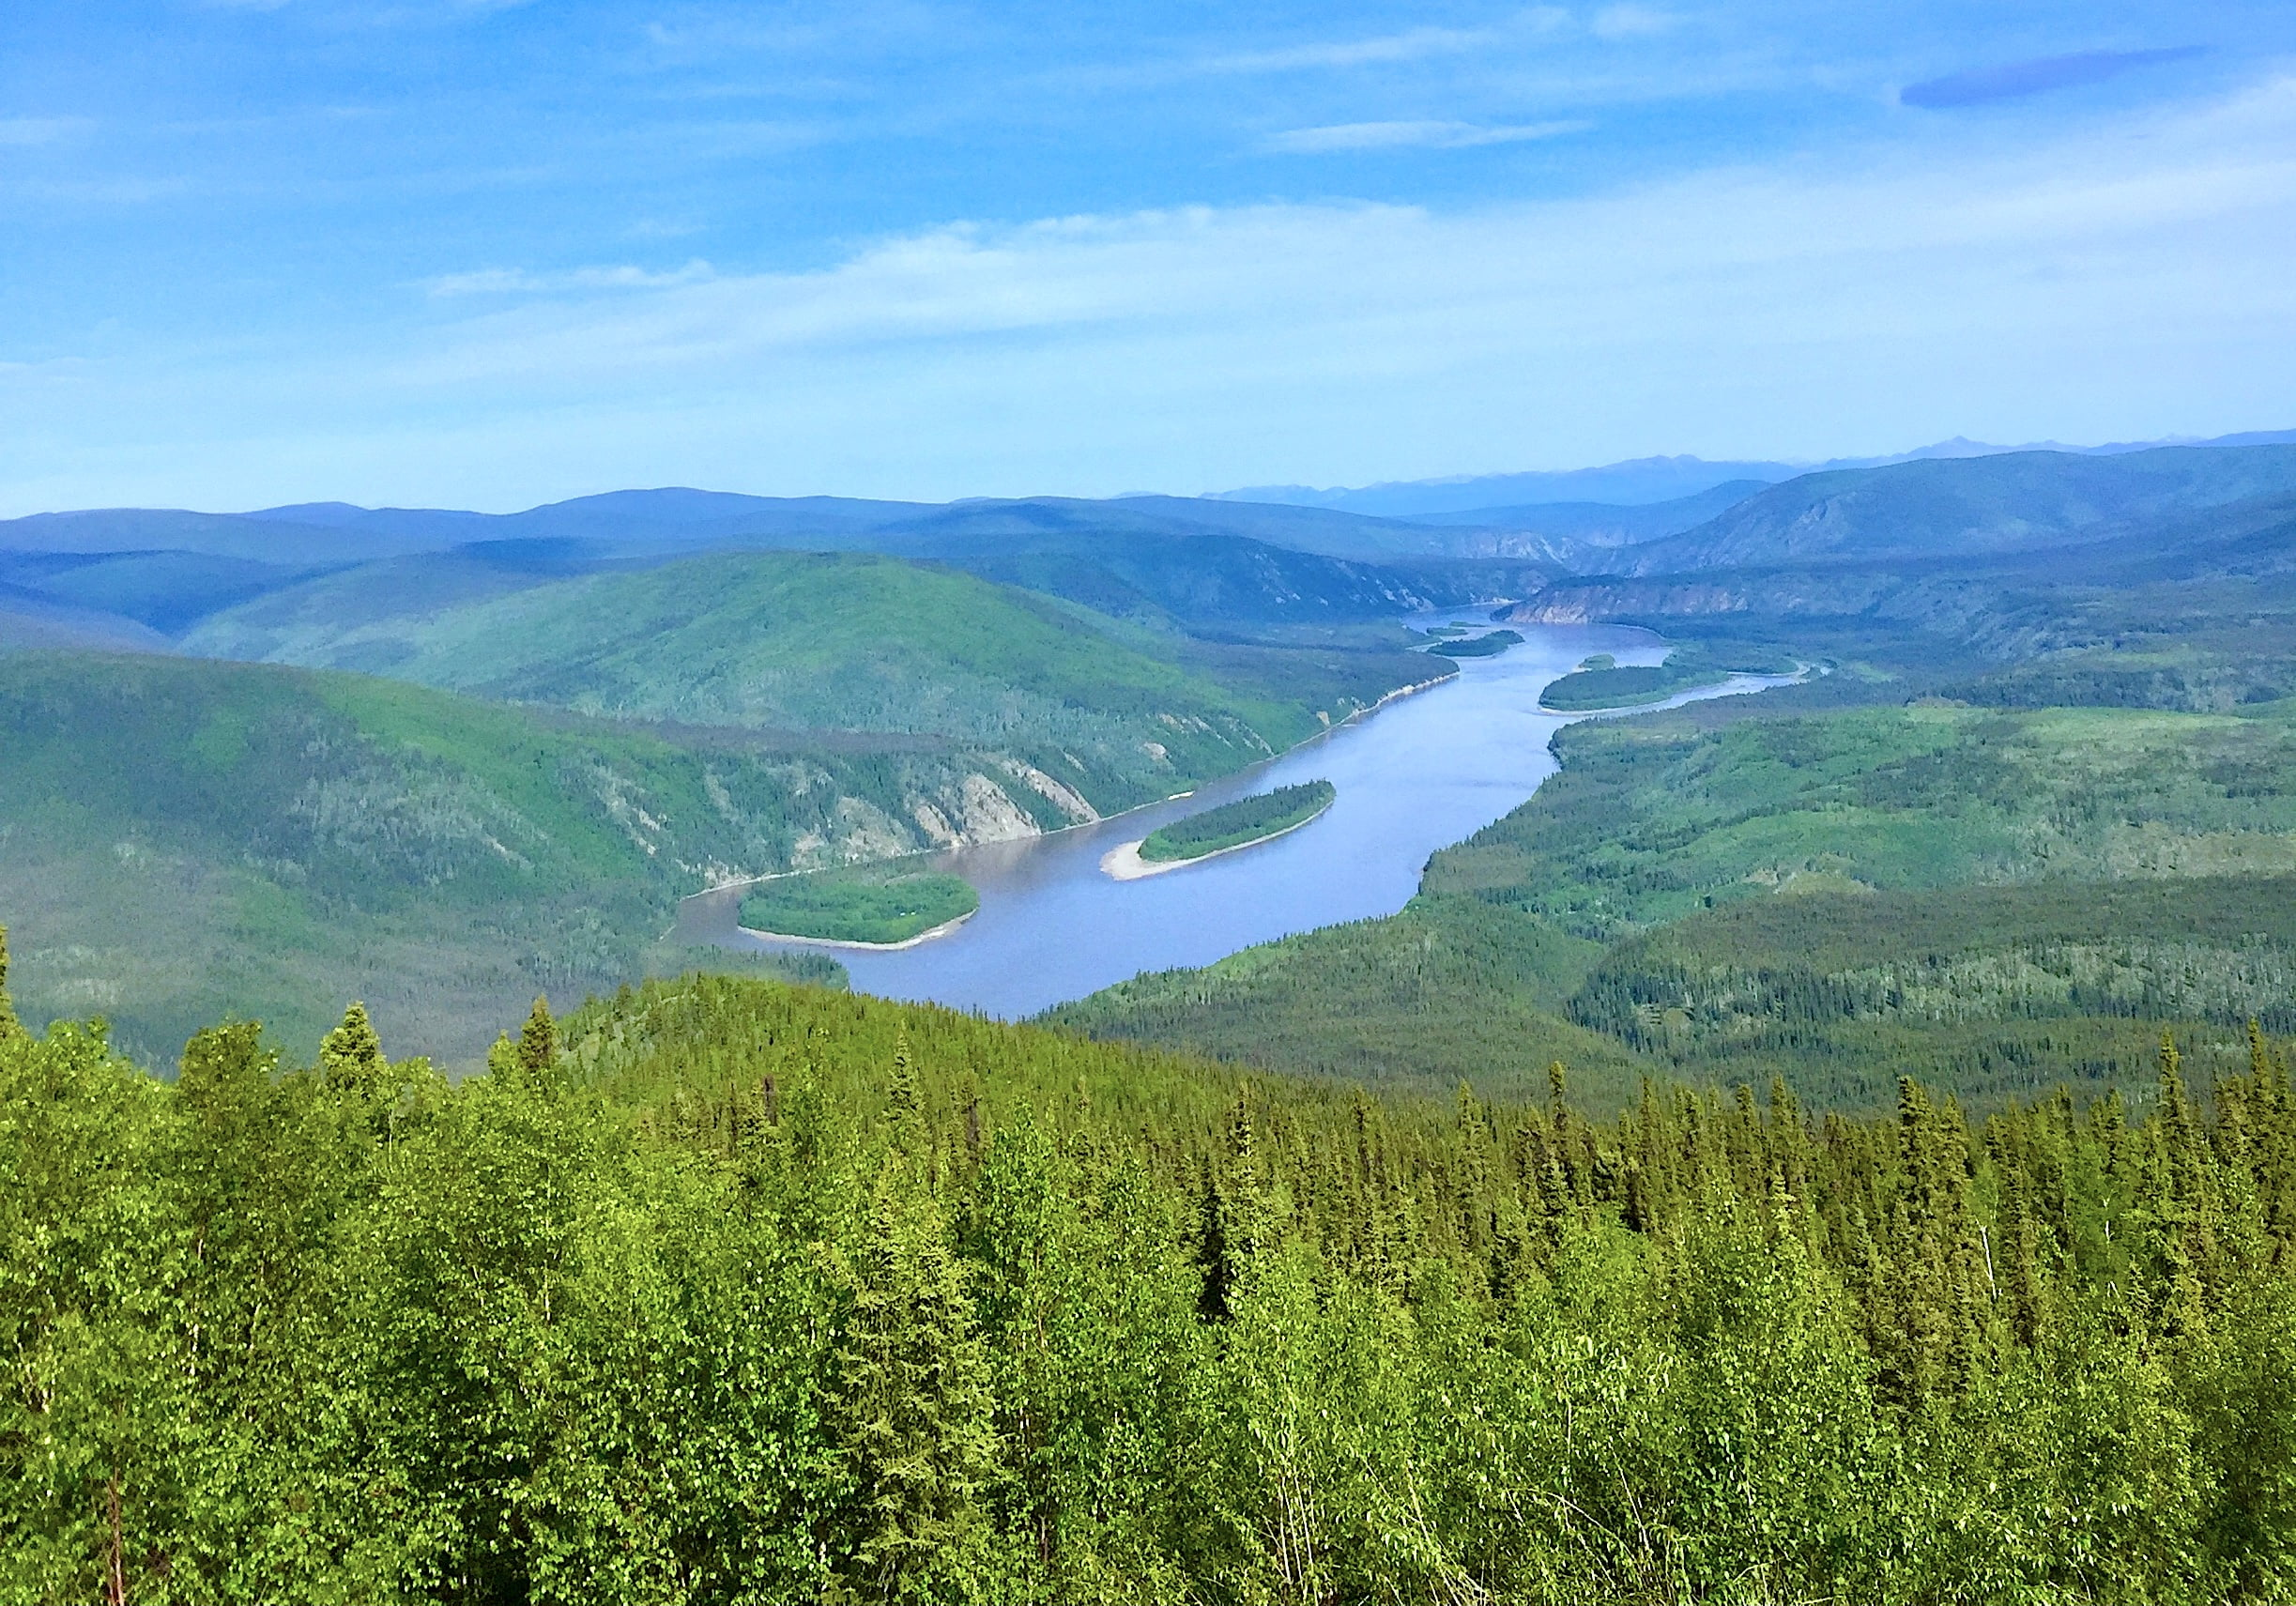 yukon-river-from-dome-road-dawson-city